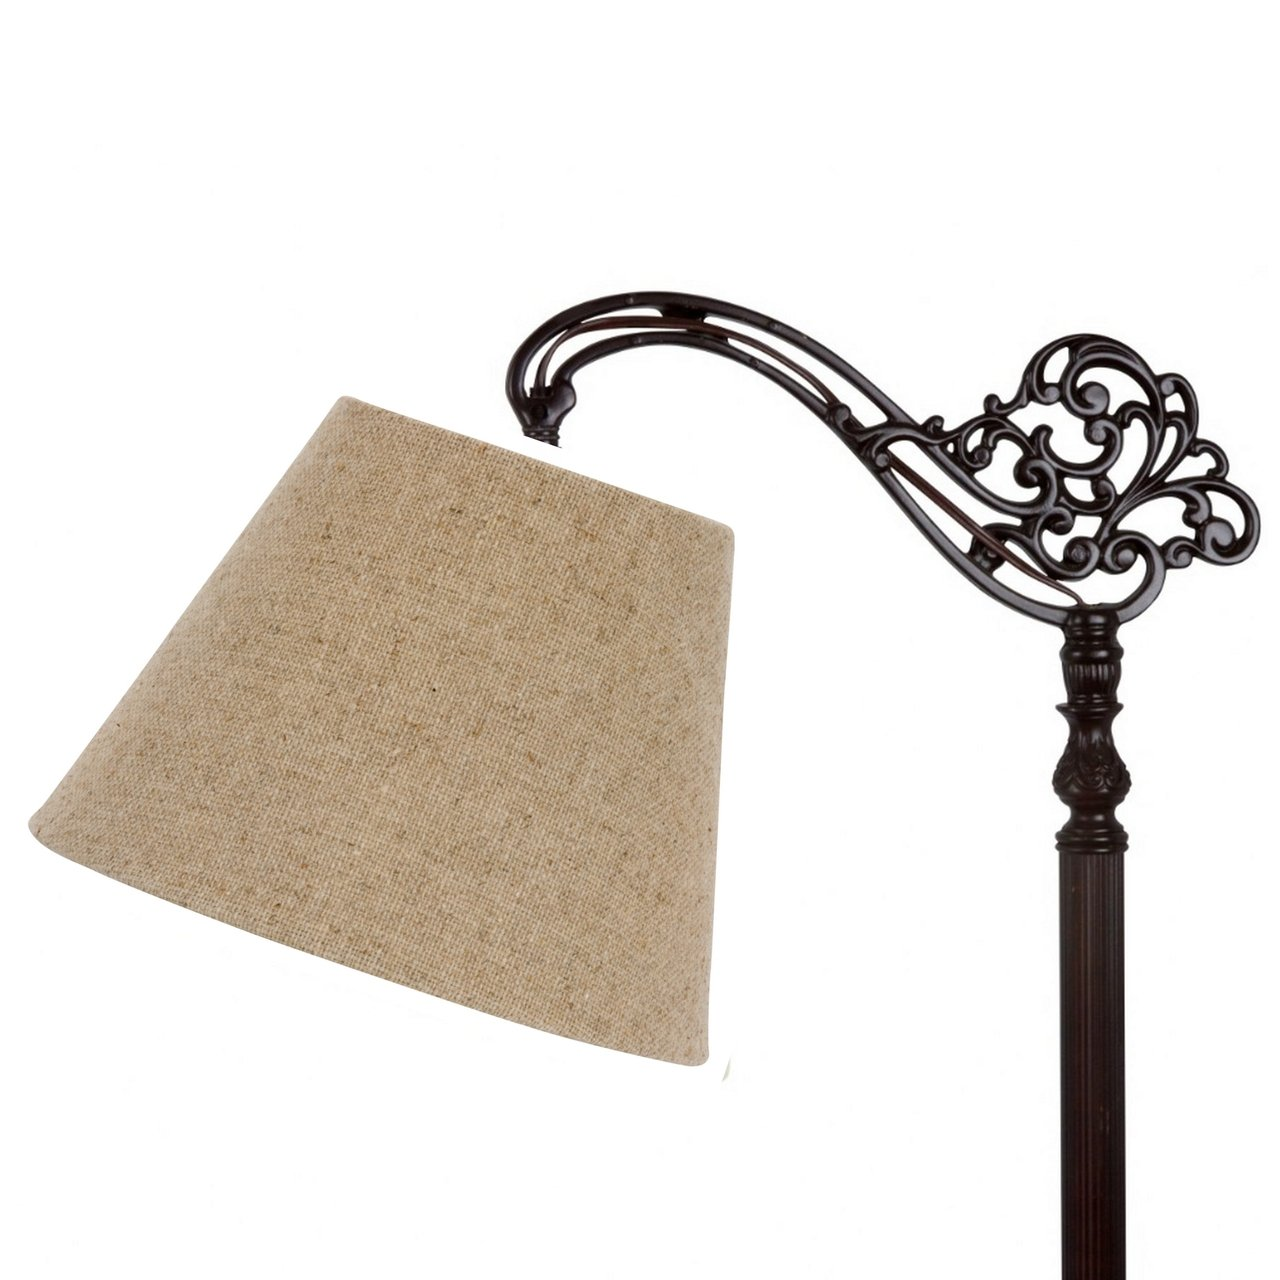 Amazon lamp shades tools home improvement - Upgradelights 10 Inch Uno Floor Lamp Shade Replacement In Beige Linen 6x10x7 5 Lampshades Amazon Com